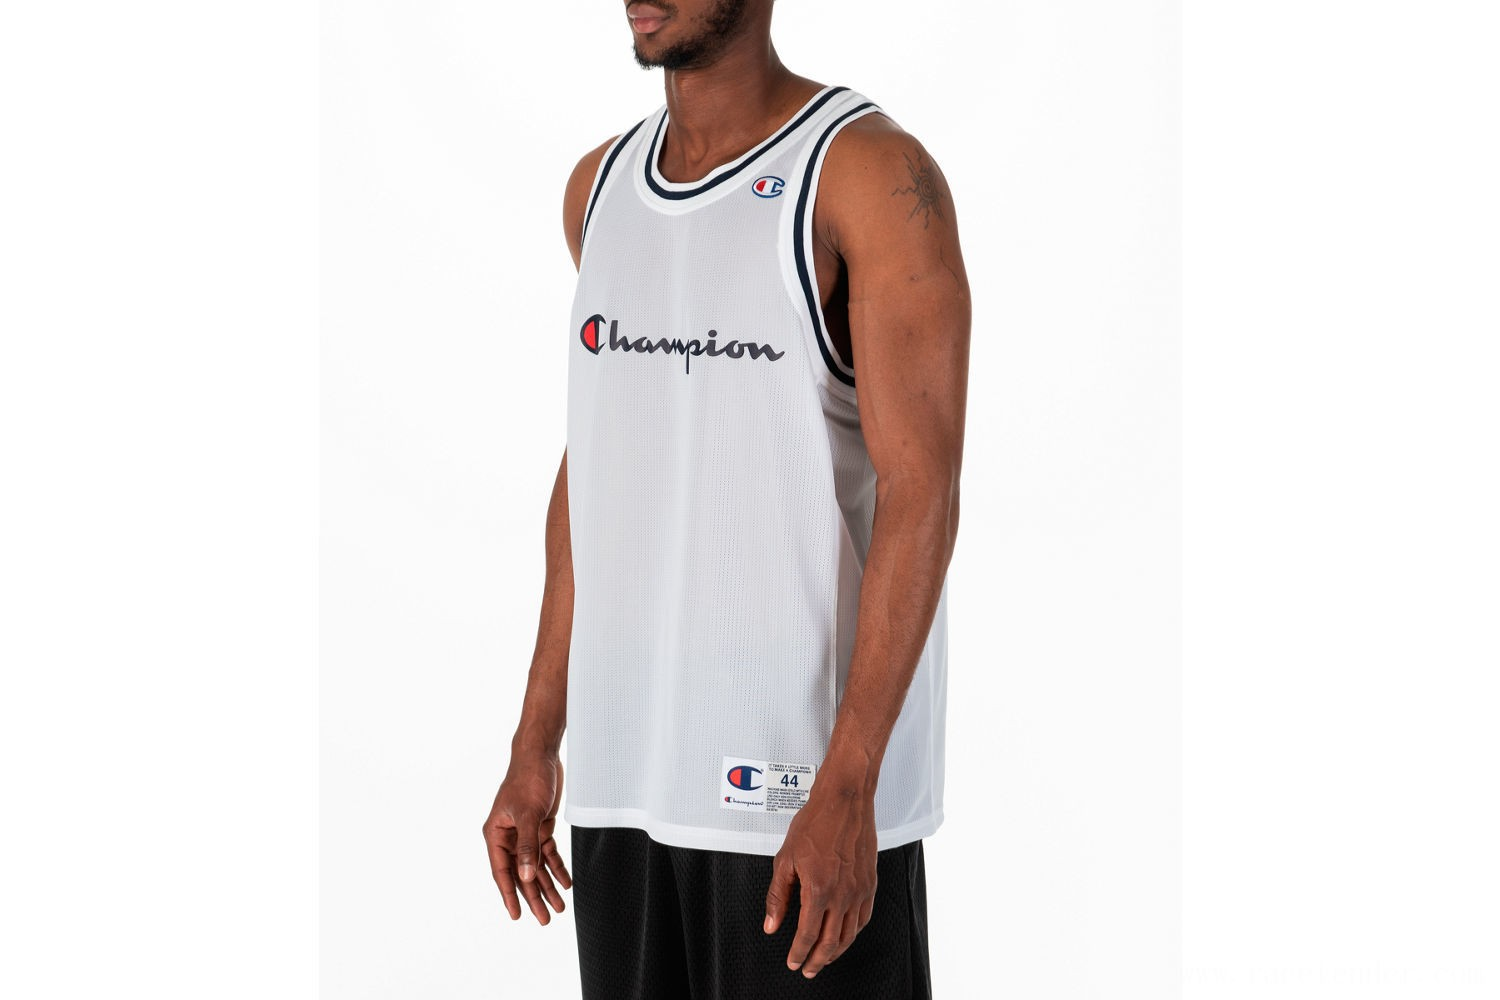 Champion Men's Graphic Mesh Jersey - Grey/White